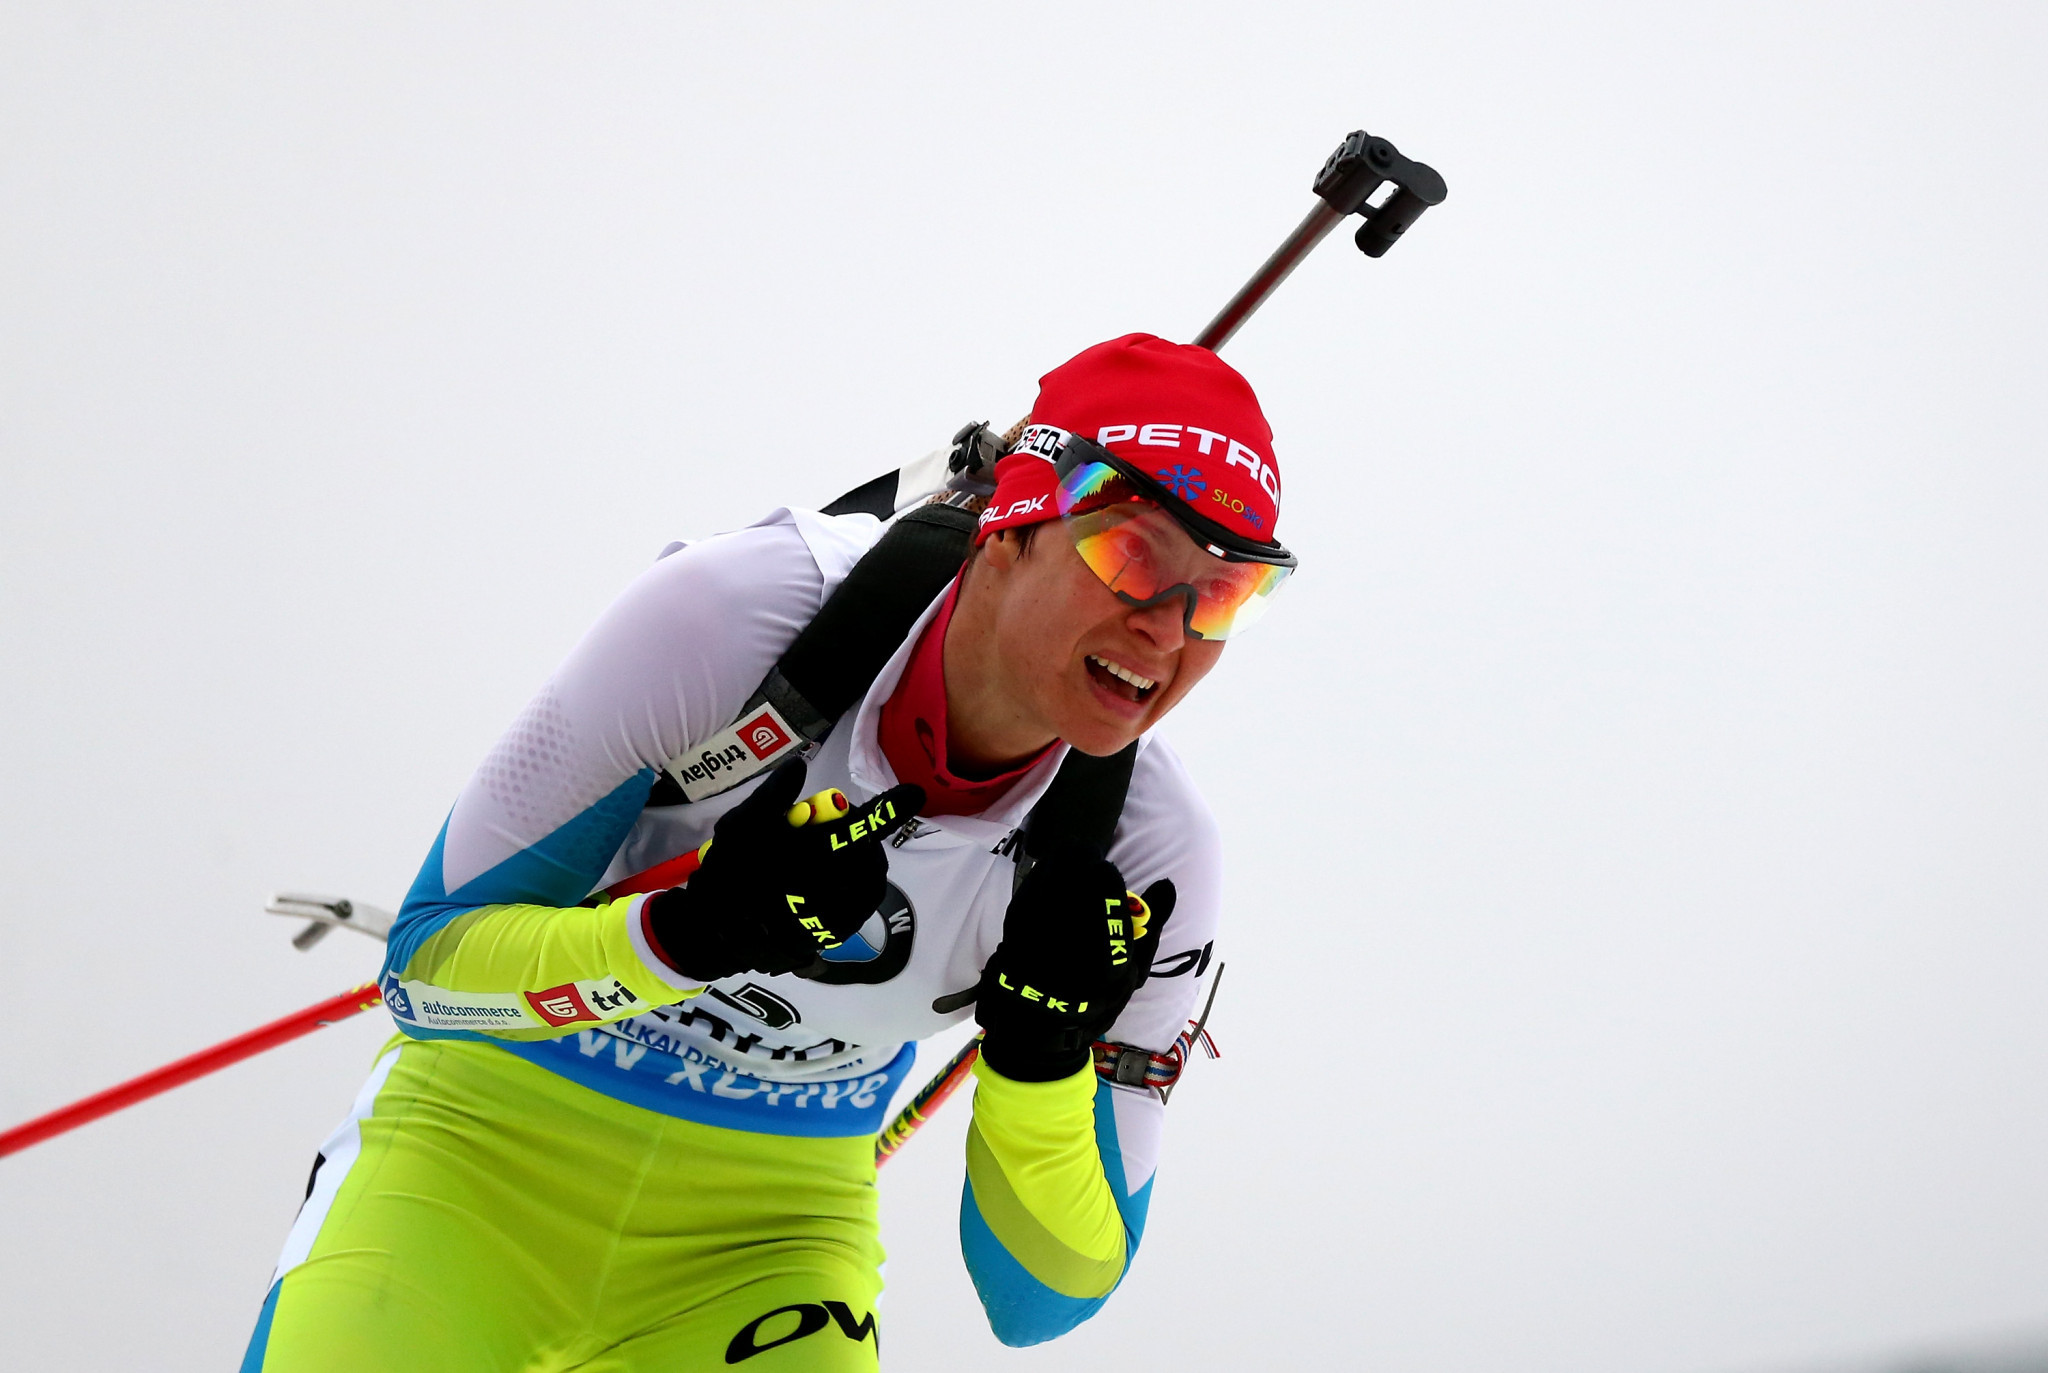 Slovenian biathlete Teja Gregorin has been named as the sole athlete caught in International Olympic Committee retests of doping samples from the Vancouver 2010 Winter Olympic Games ©Getty Images